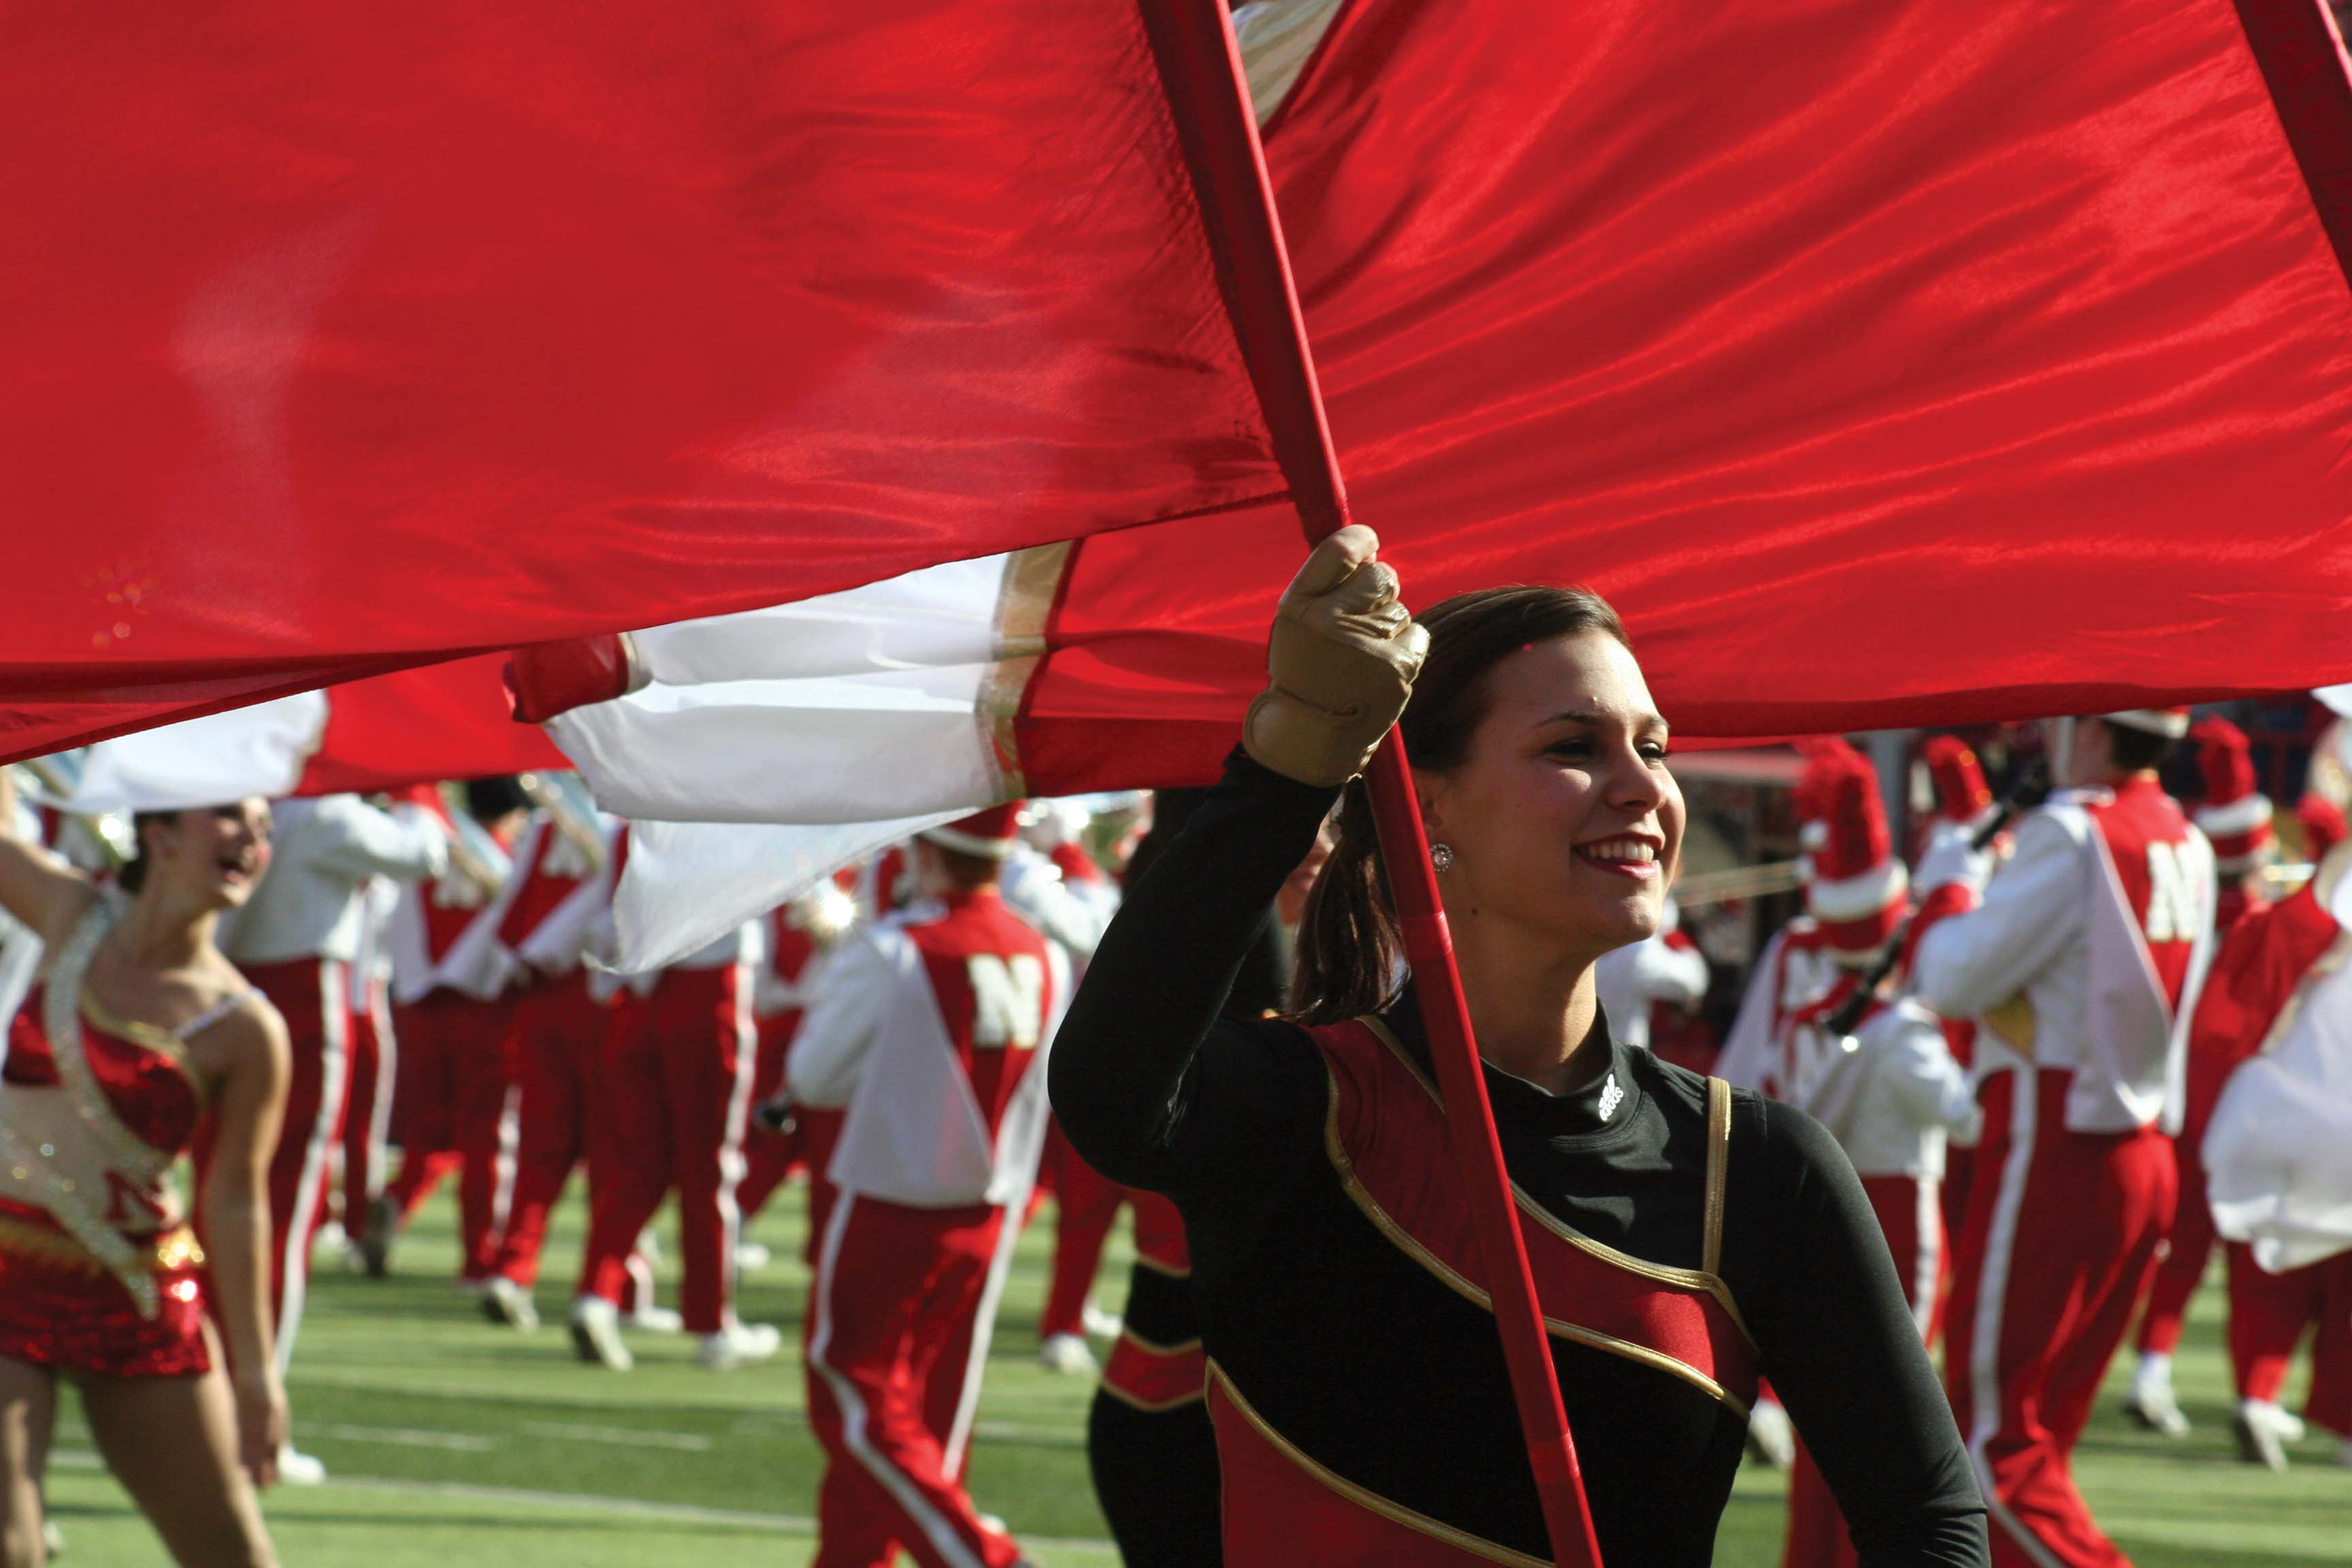 Cornhusker Marching Band's Color Guard